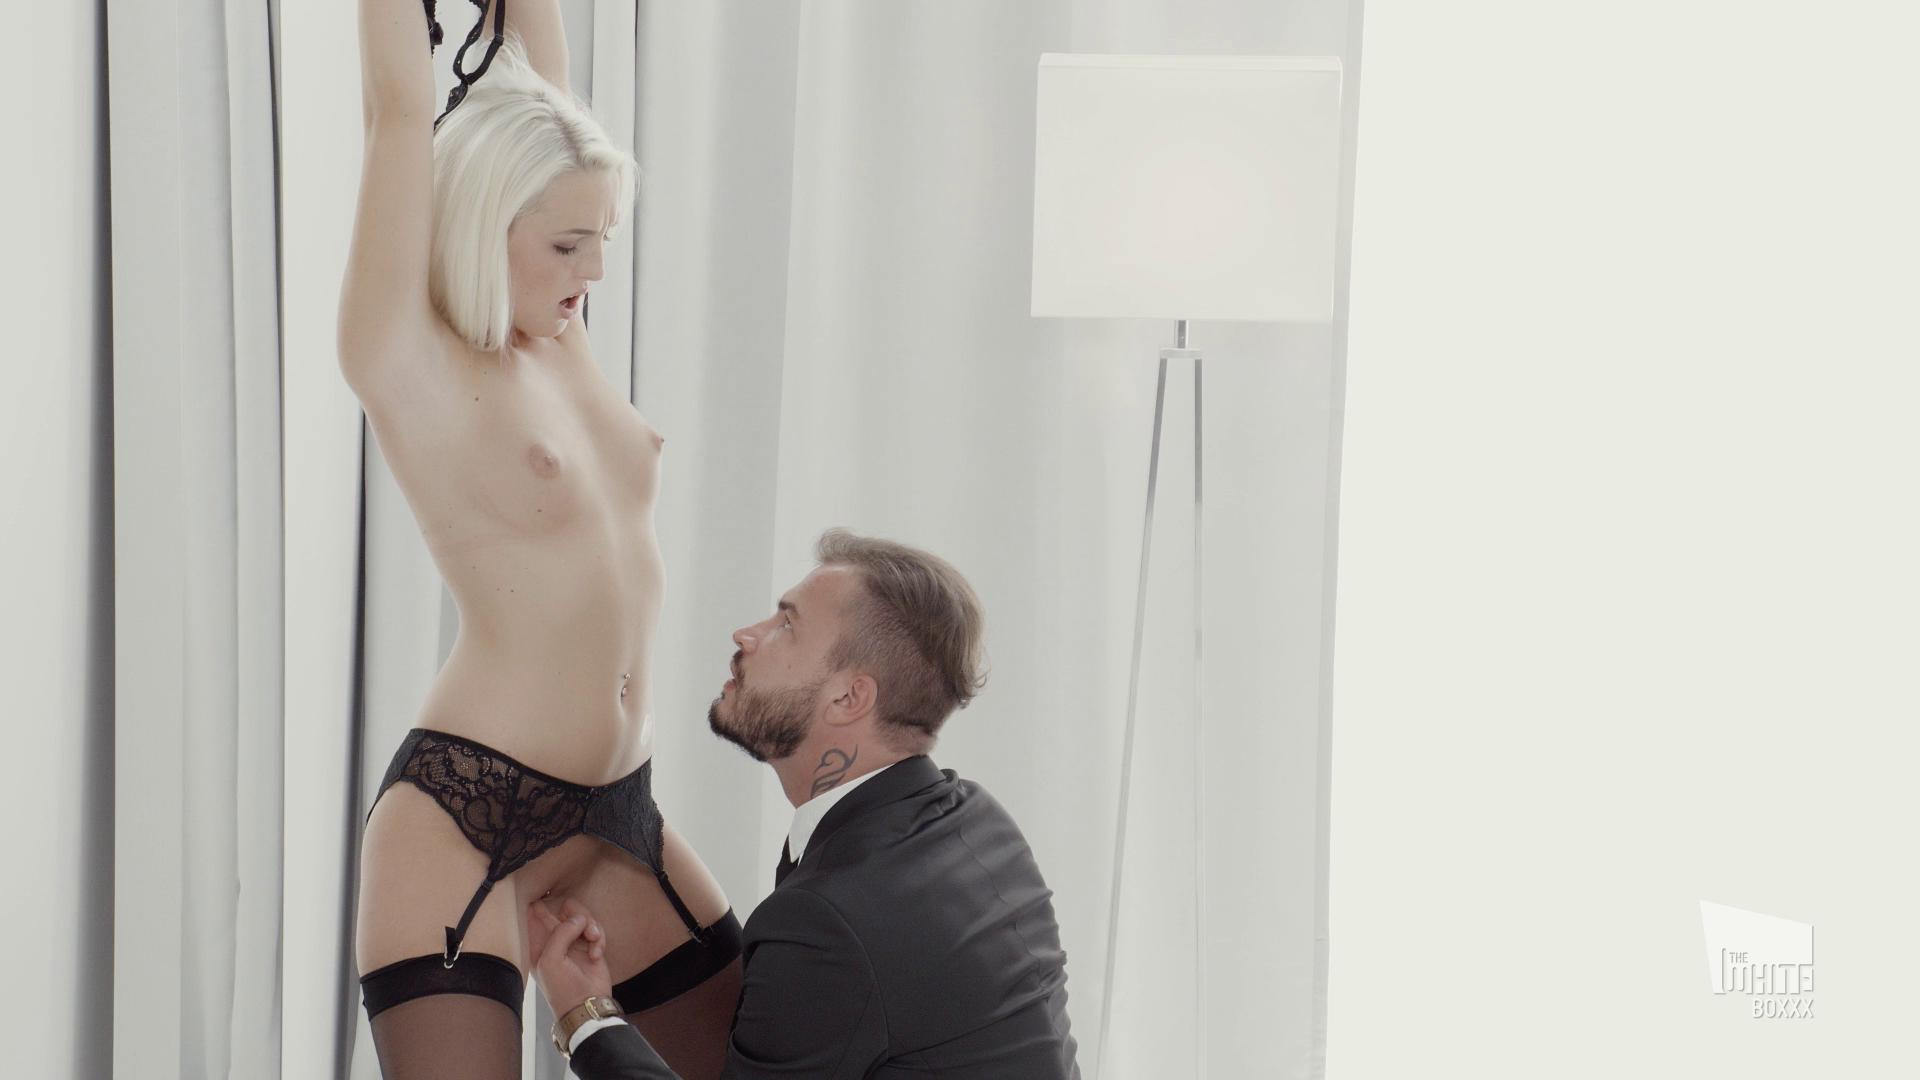 TheWhiteBoxxx – Lovita Fate